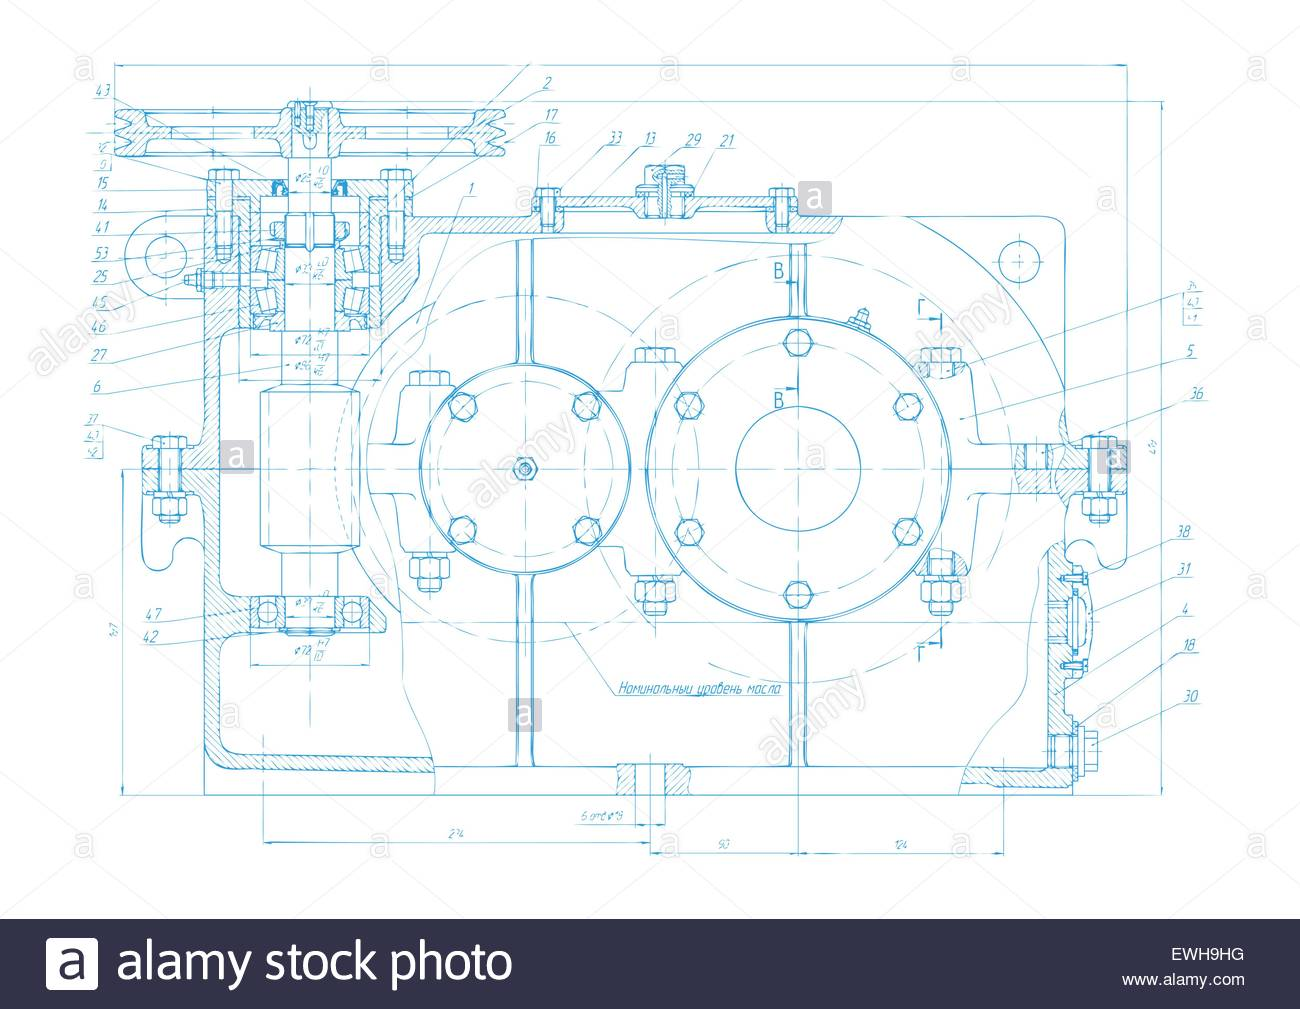 Engineering detail drawing at getdrawings free for personal 1300x1009 vector background of abstract engineering drawing tech malvernweather Gallery